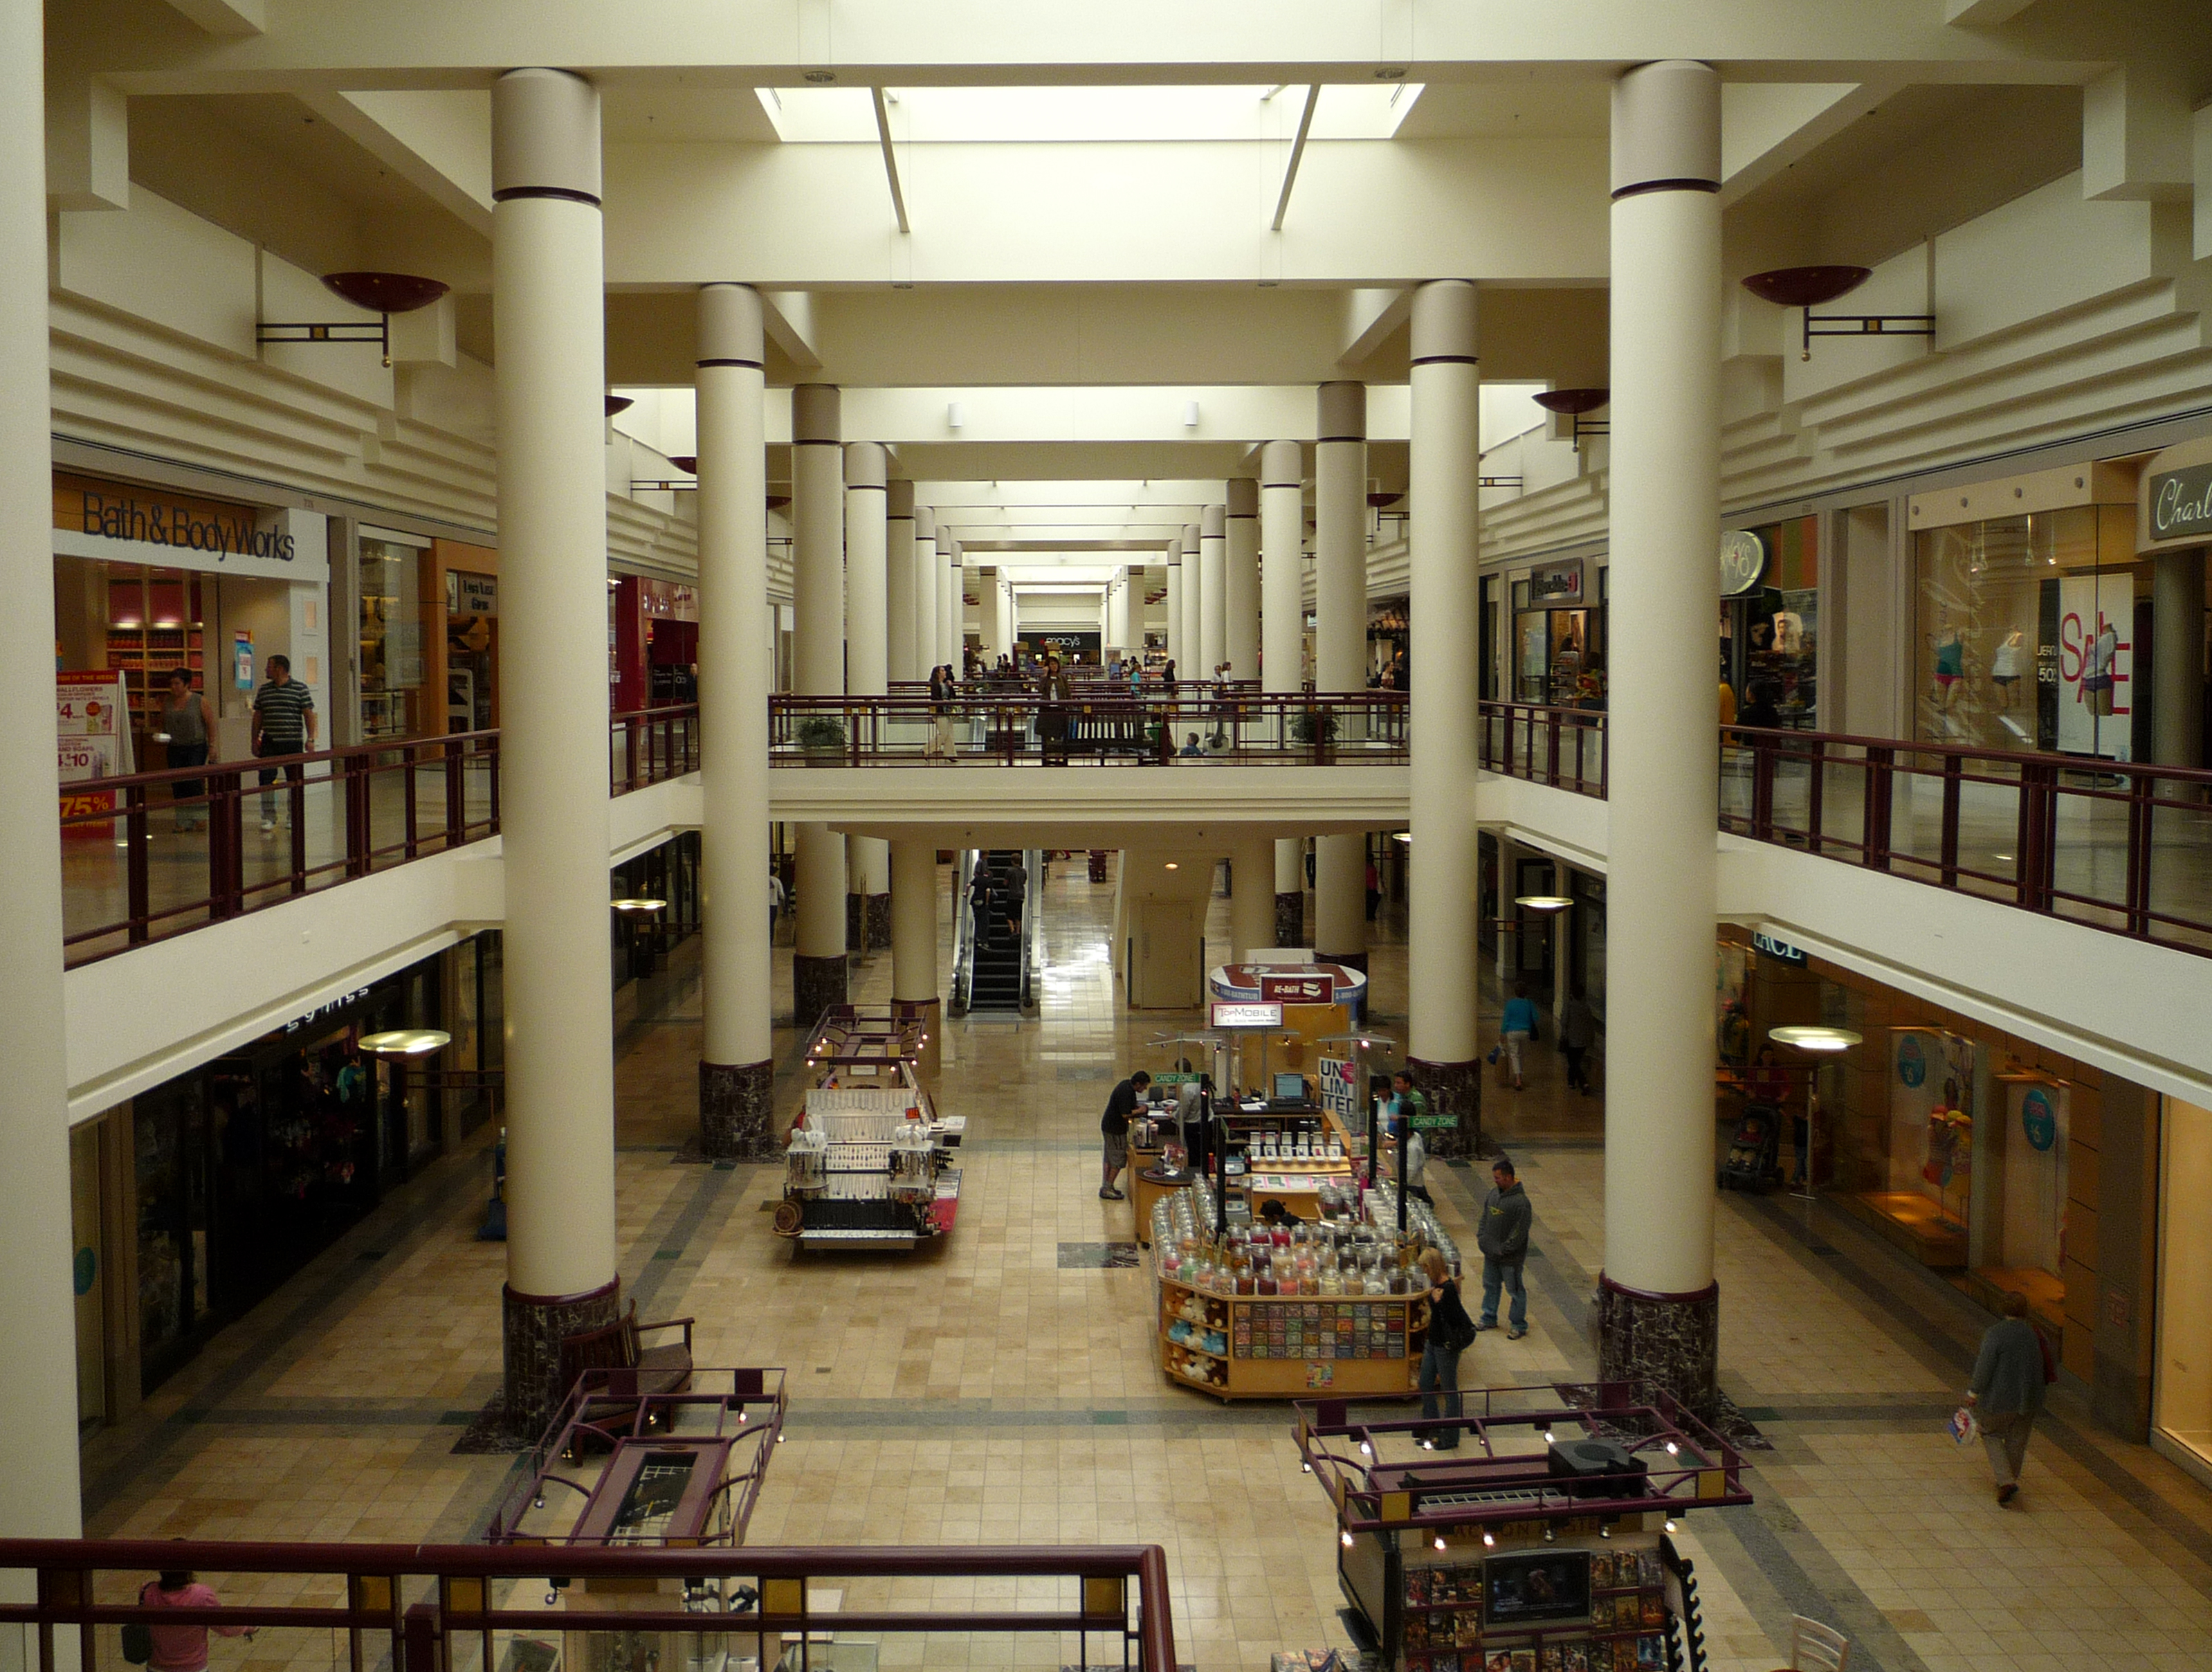 Dutch Square Mall >> Roseville, Minnesota | Familypedia | FANDOM powered by Wikia